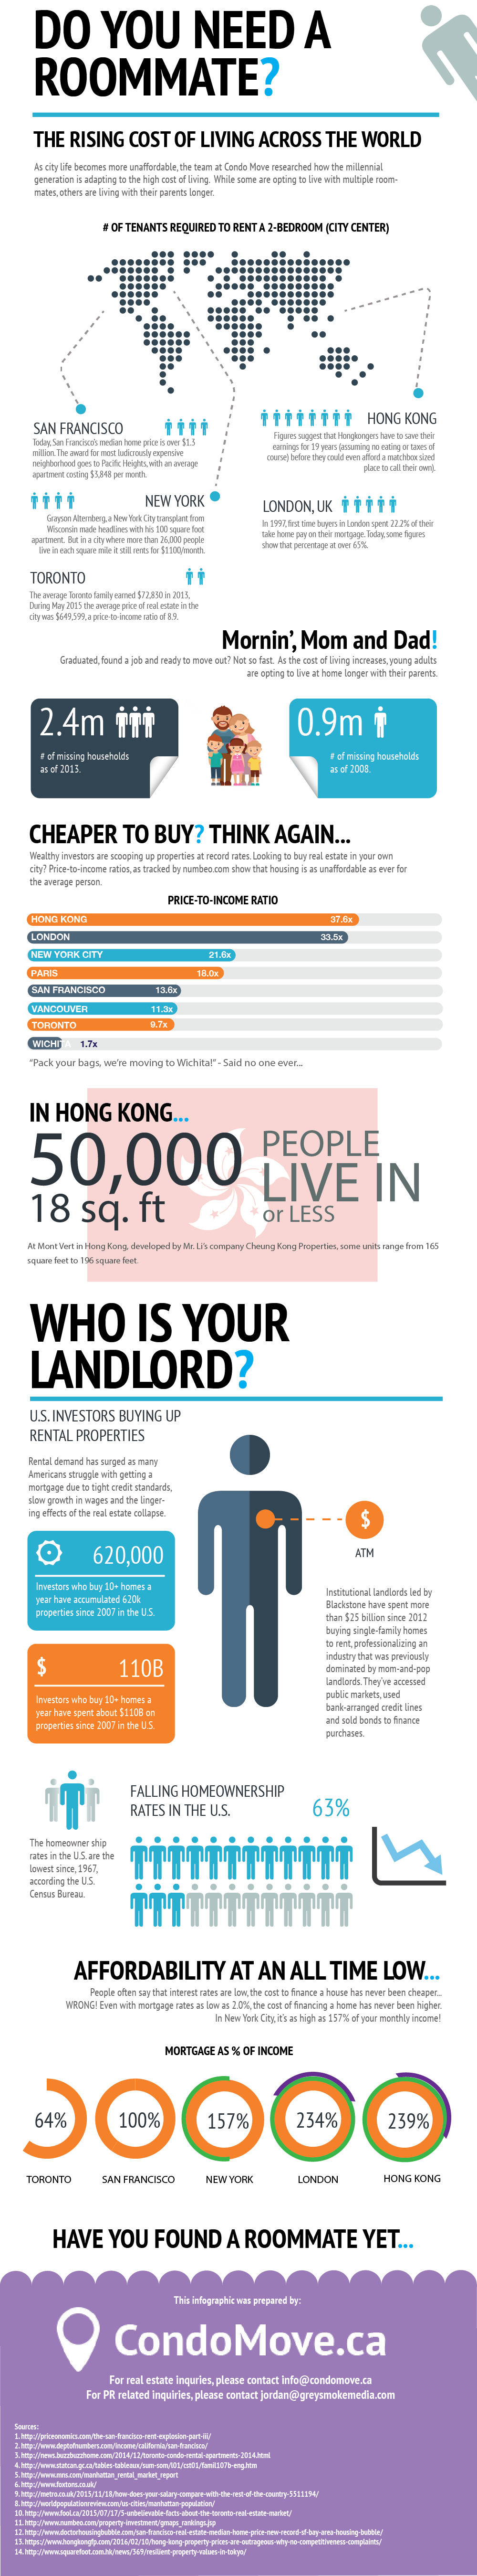 Infographic : Do you need a roommate?